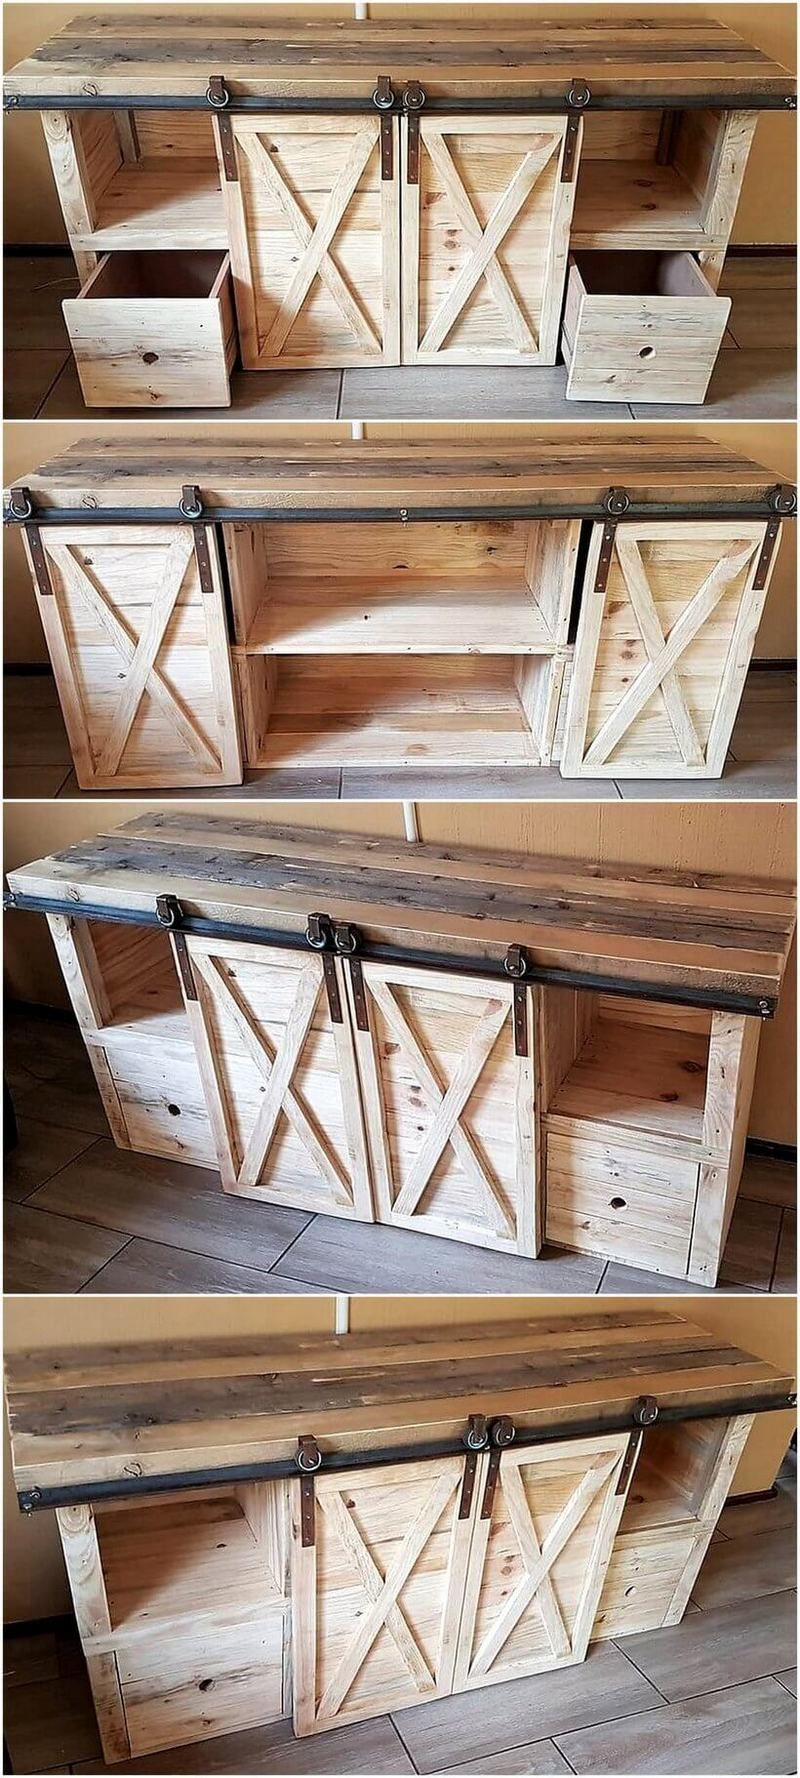 Photo of Rustic Pallet Wood Ideas and Projects | Rustic Living and Home Decor Ideas. #Woo…